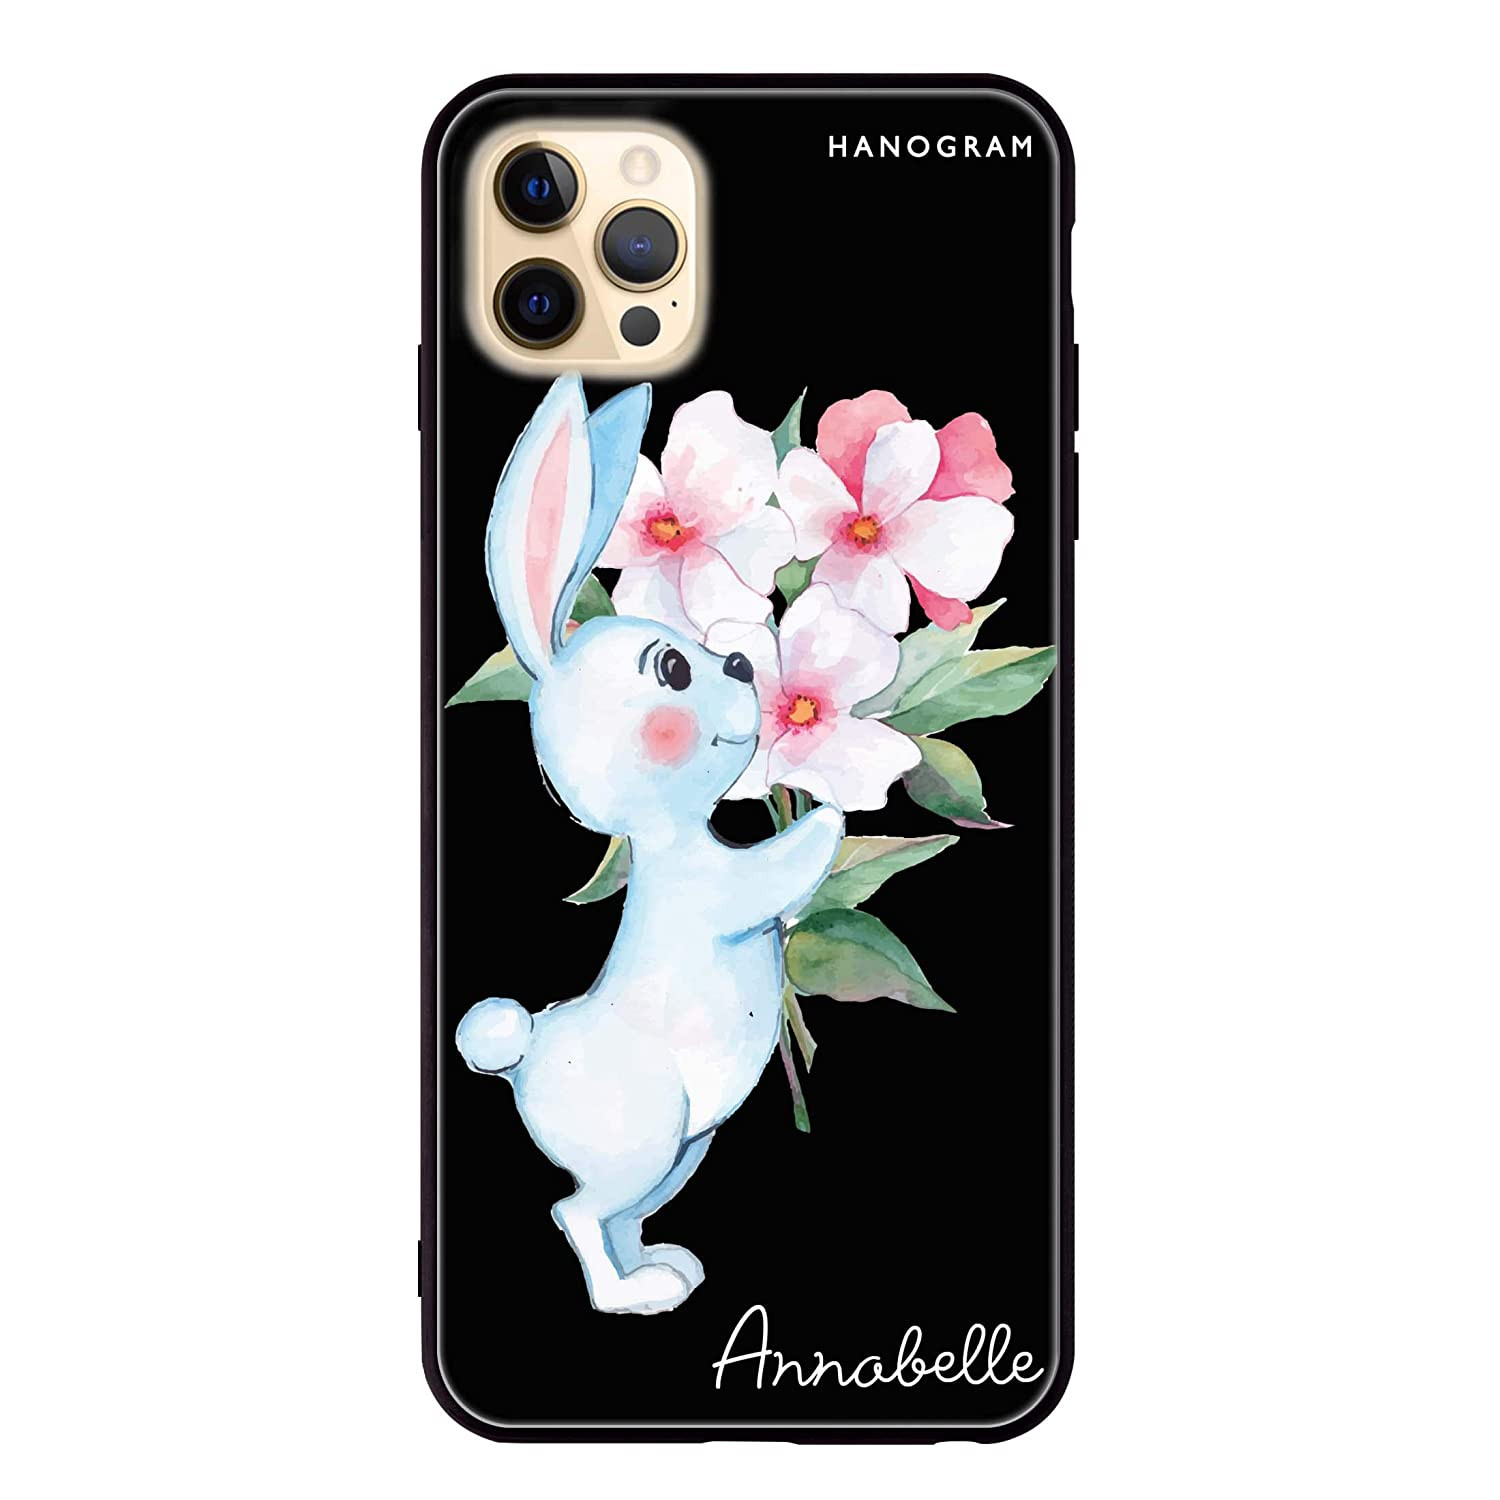 Rabbit And Flowers Tucson Mall iPhone 12 Max Pro Glass Max 74% OFF Case iPho